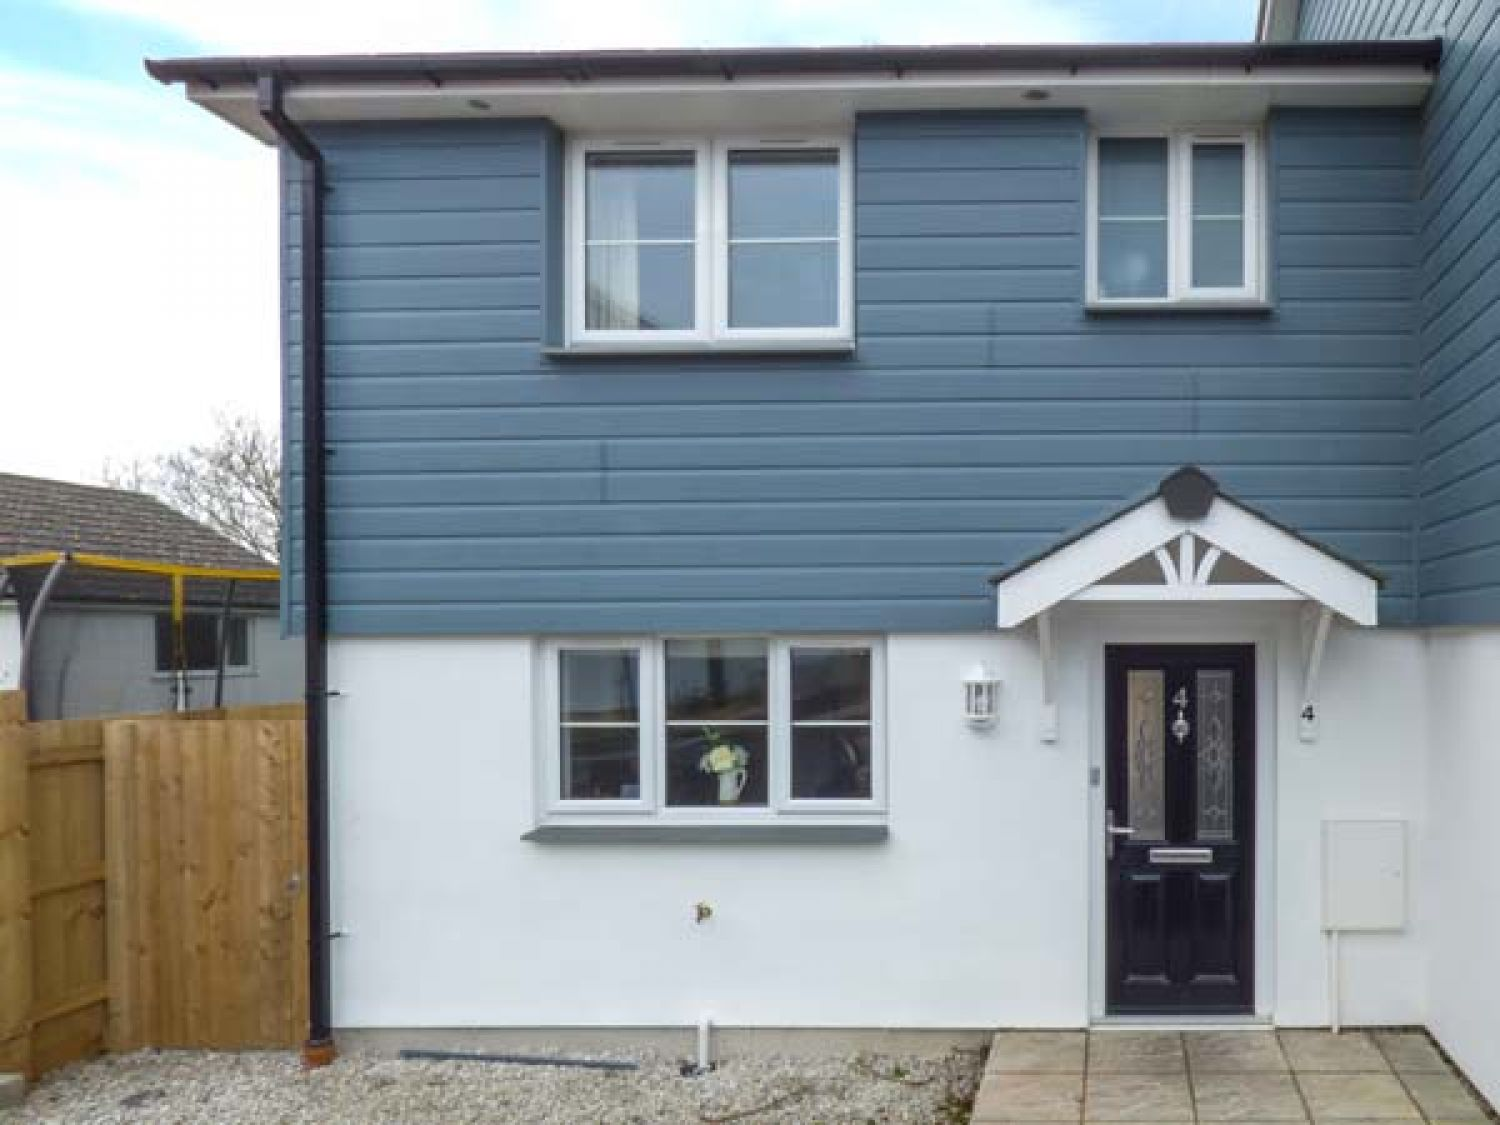 4 Trevanson Mews - Cornwall - 937193 - photo 1